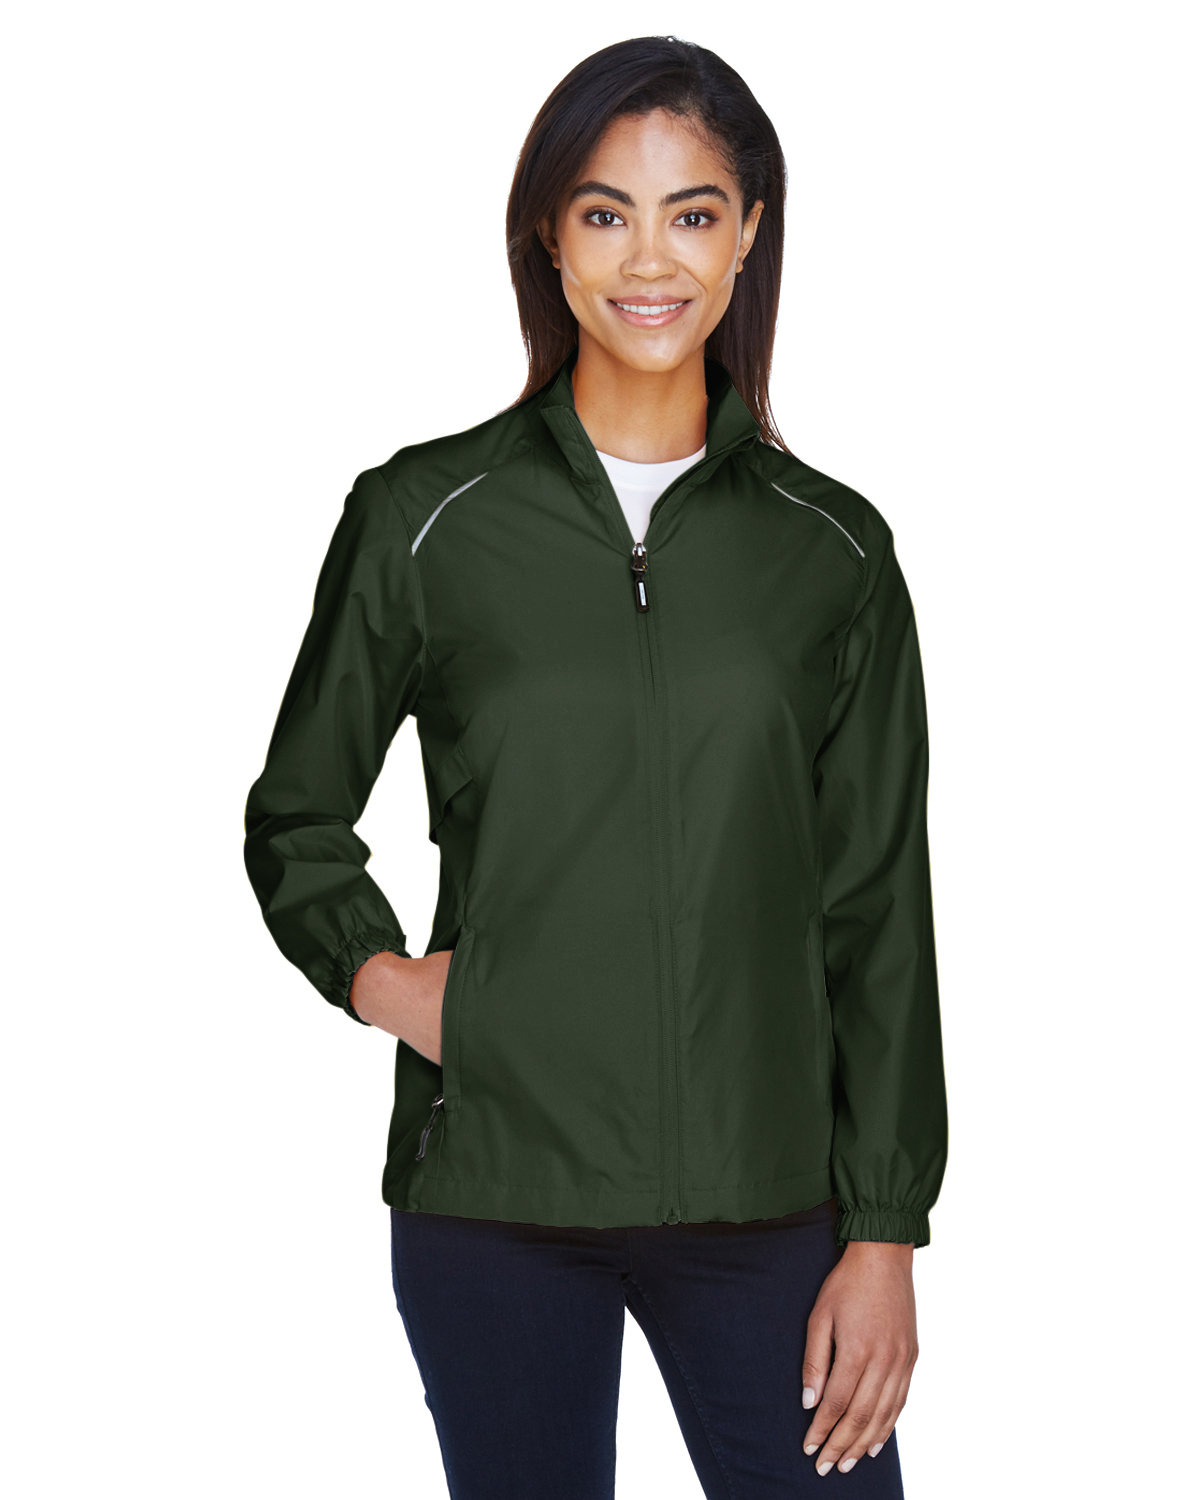 Core 365 Ladies' Motivate Unlined Lightweight Jacket FOREST